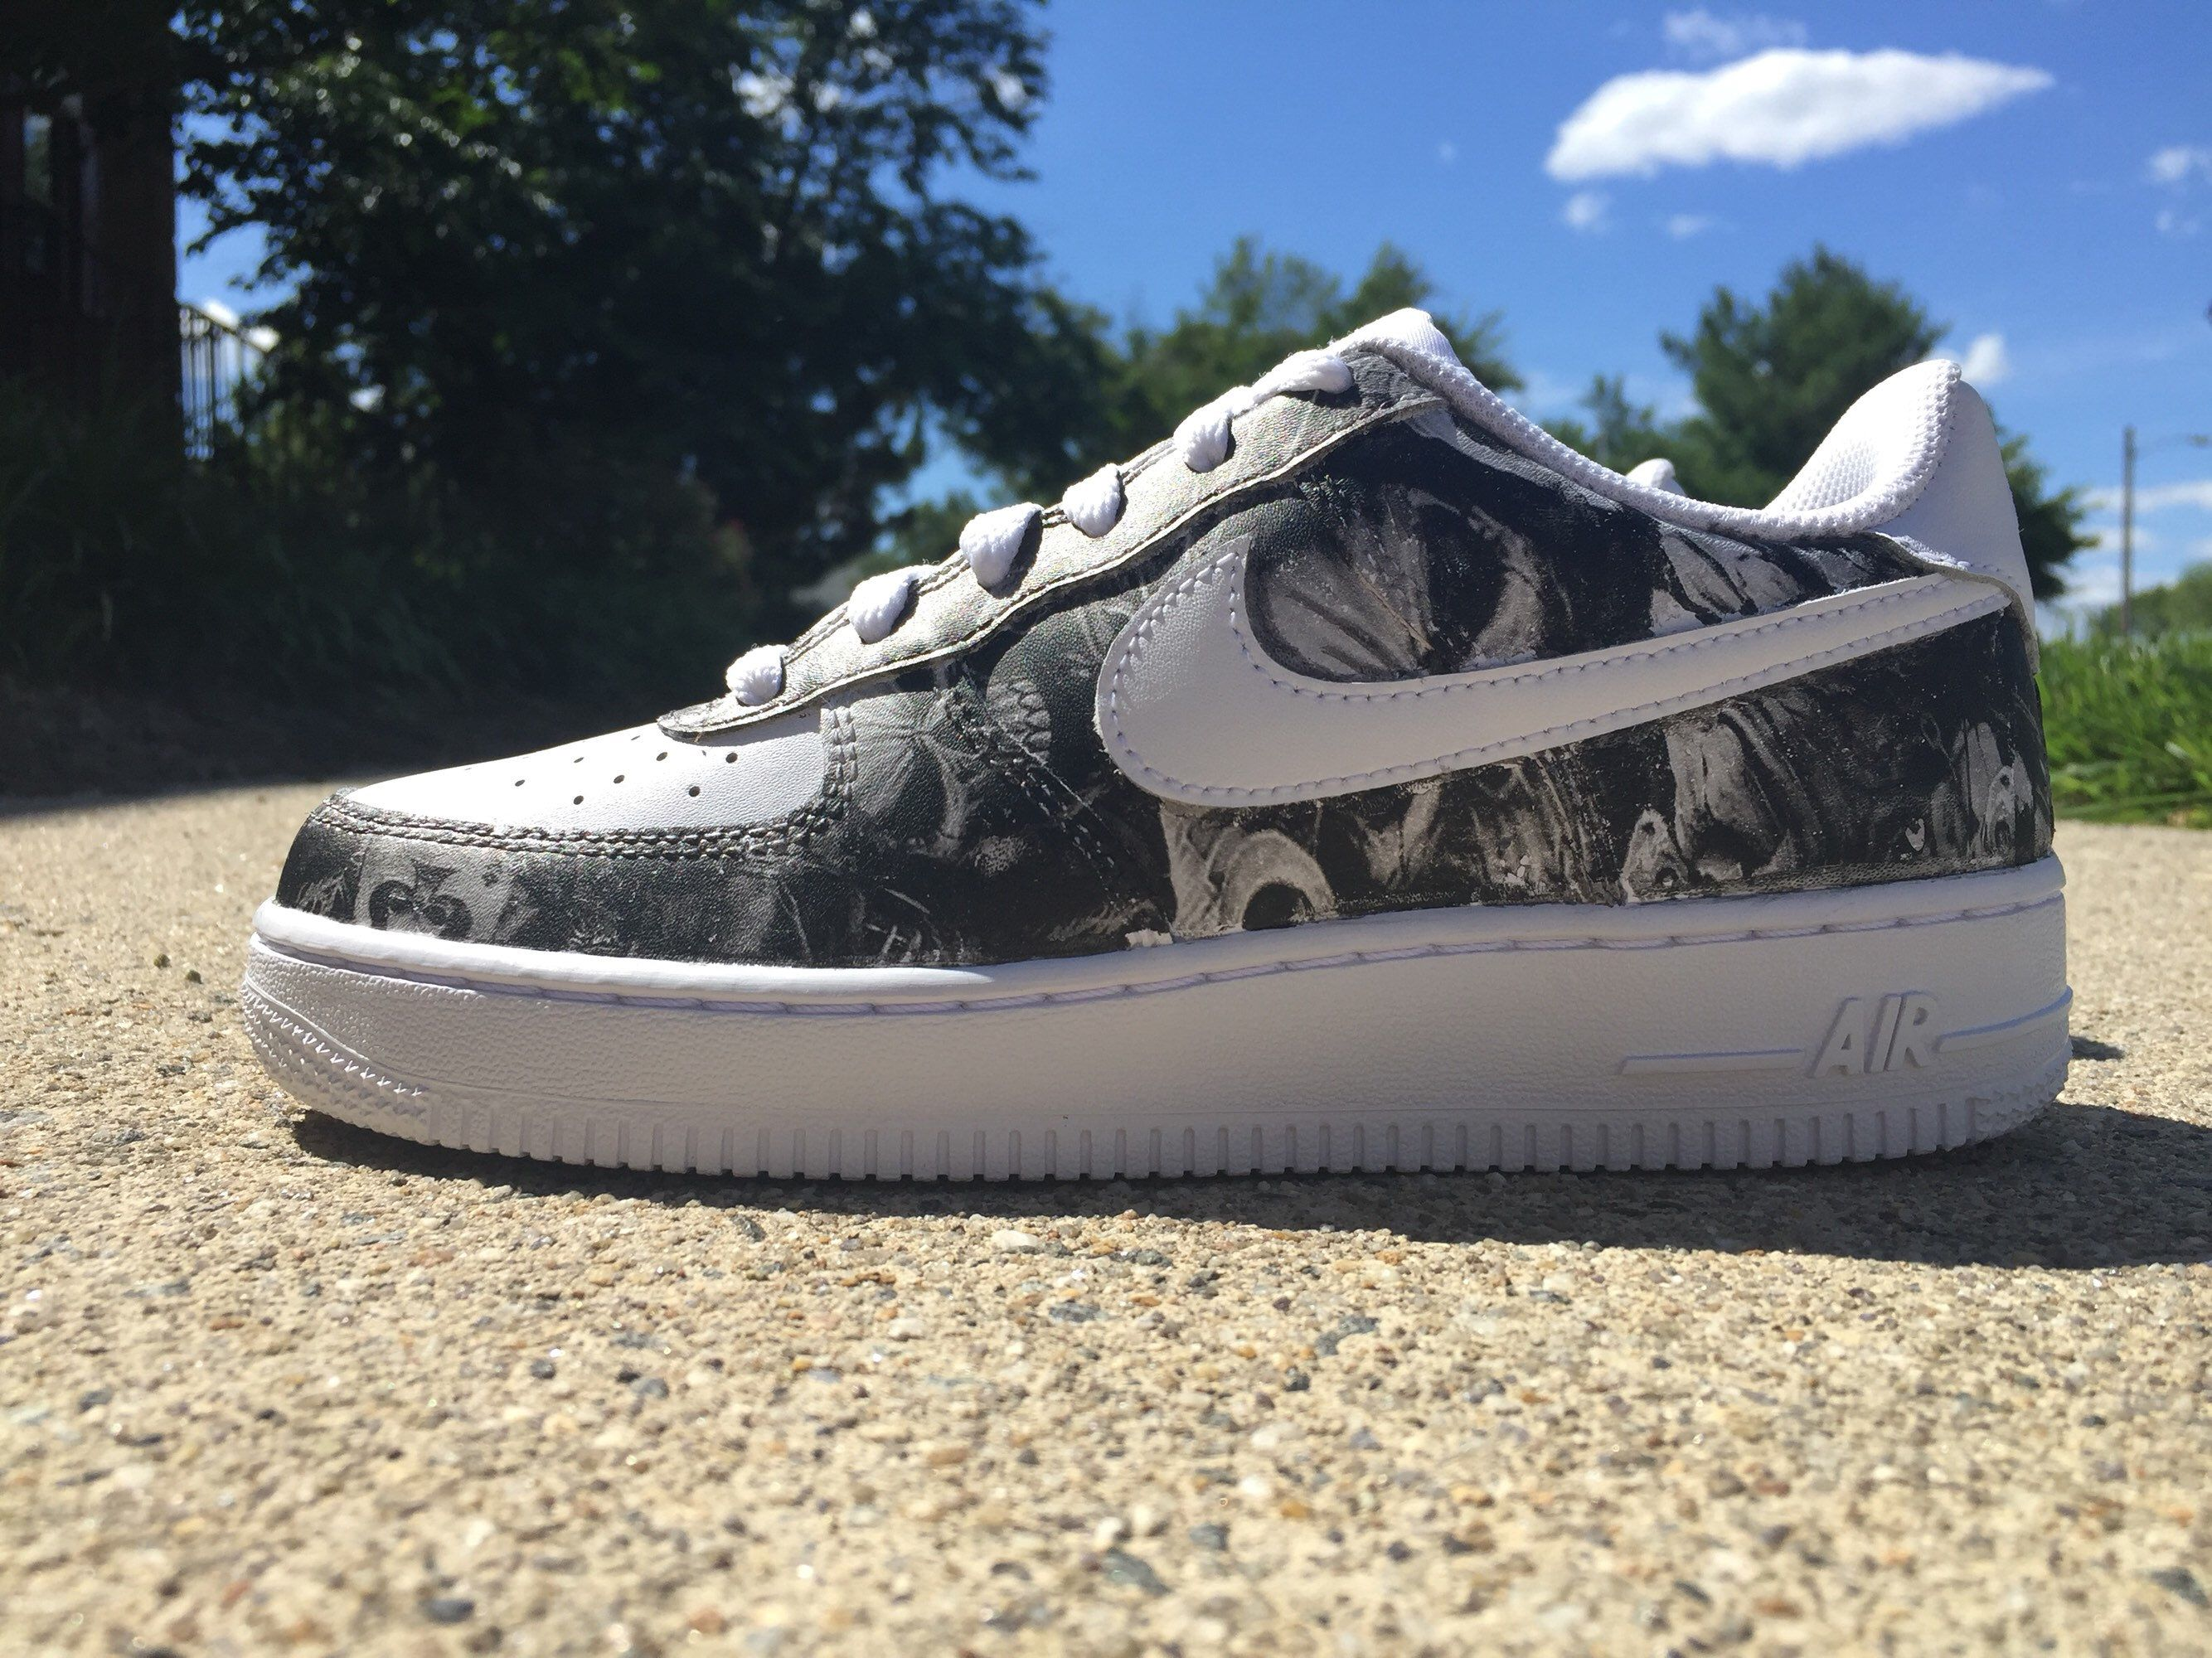 Skull Cust Air Force 1 (Hydrodipped) in 2020 Hydro